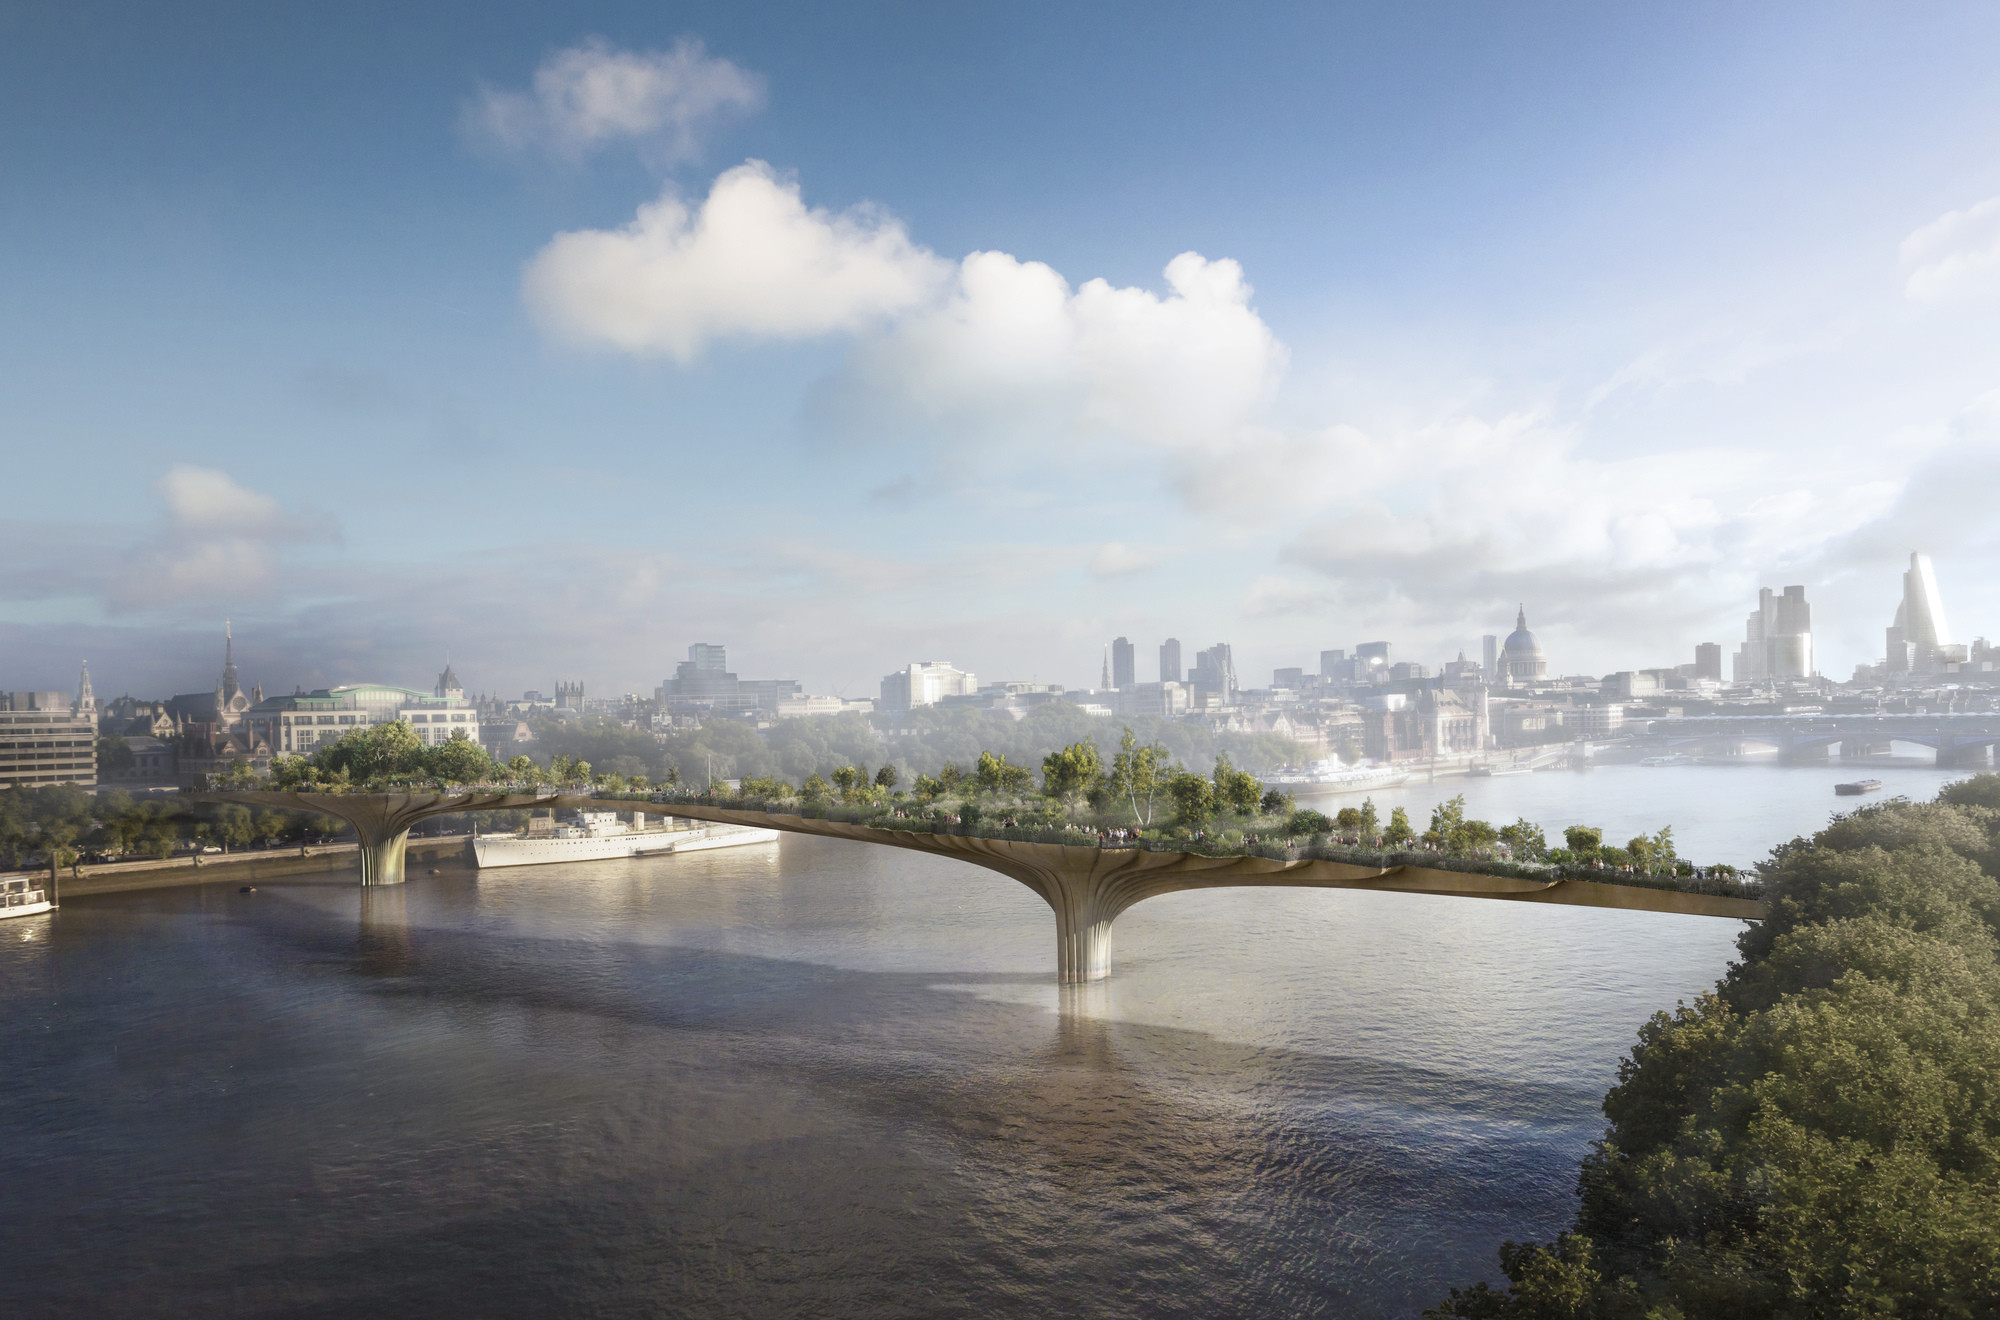 Heatherwick's trademark ingenuity, demonstrated in previous projects such as the London Garden Bridge proposal, will be needed for the difficult site in Leeds. Image Courtesy of Arup